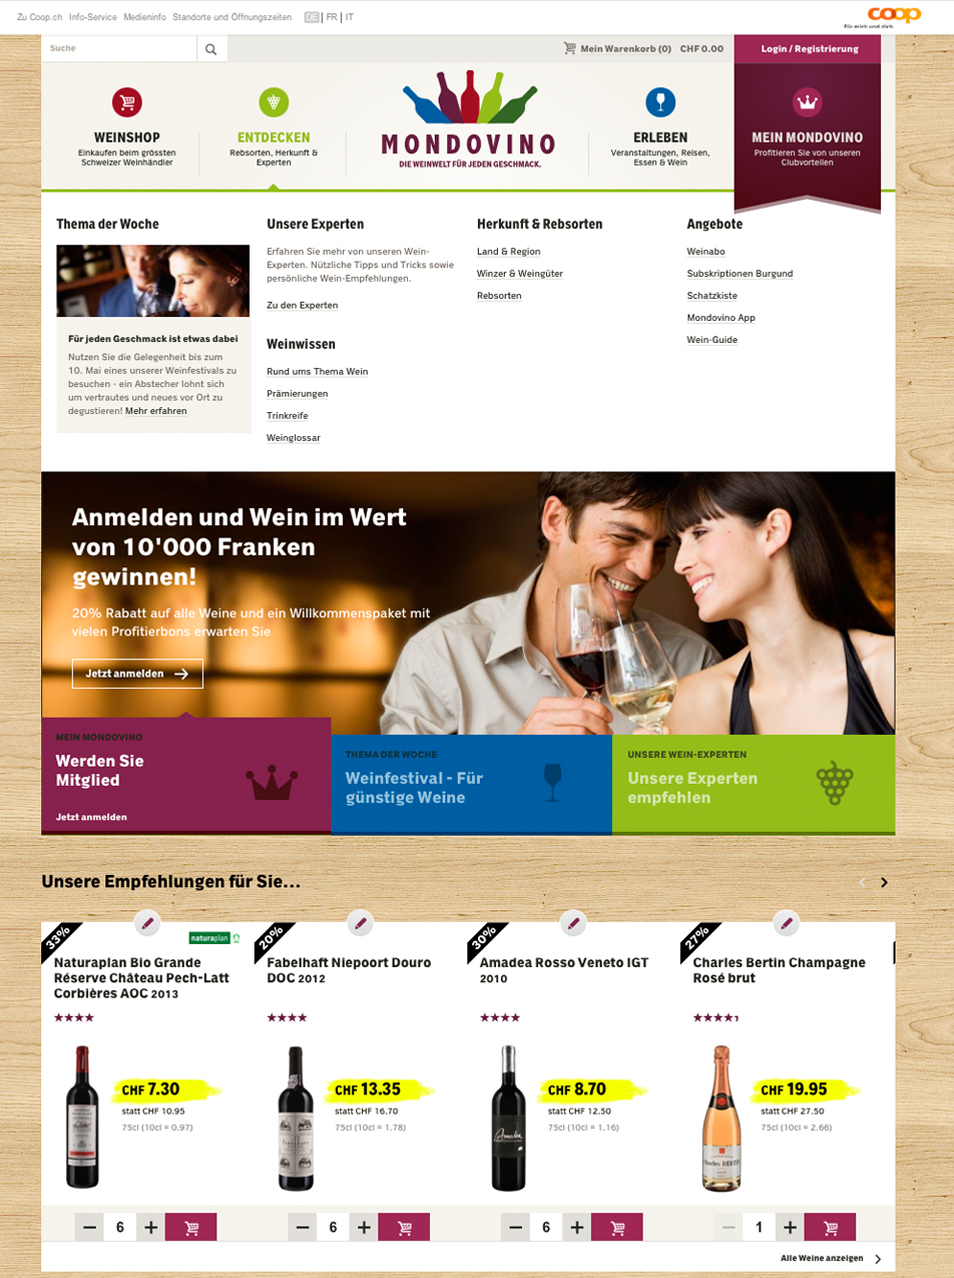 The start page of the online shop